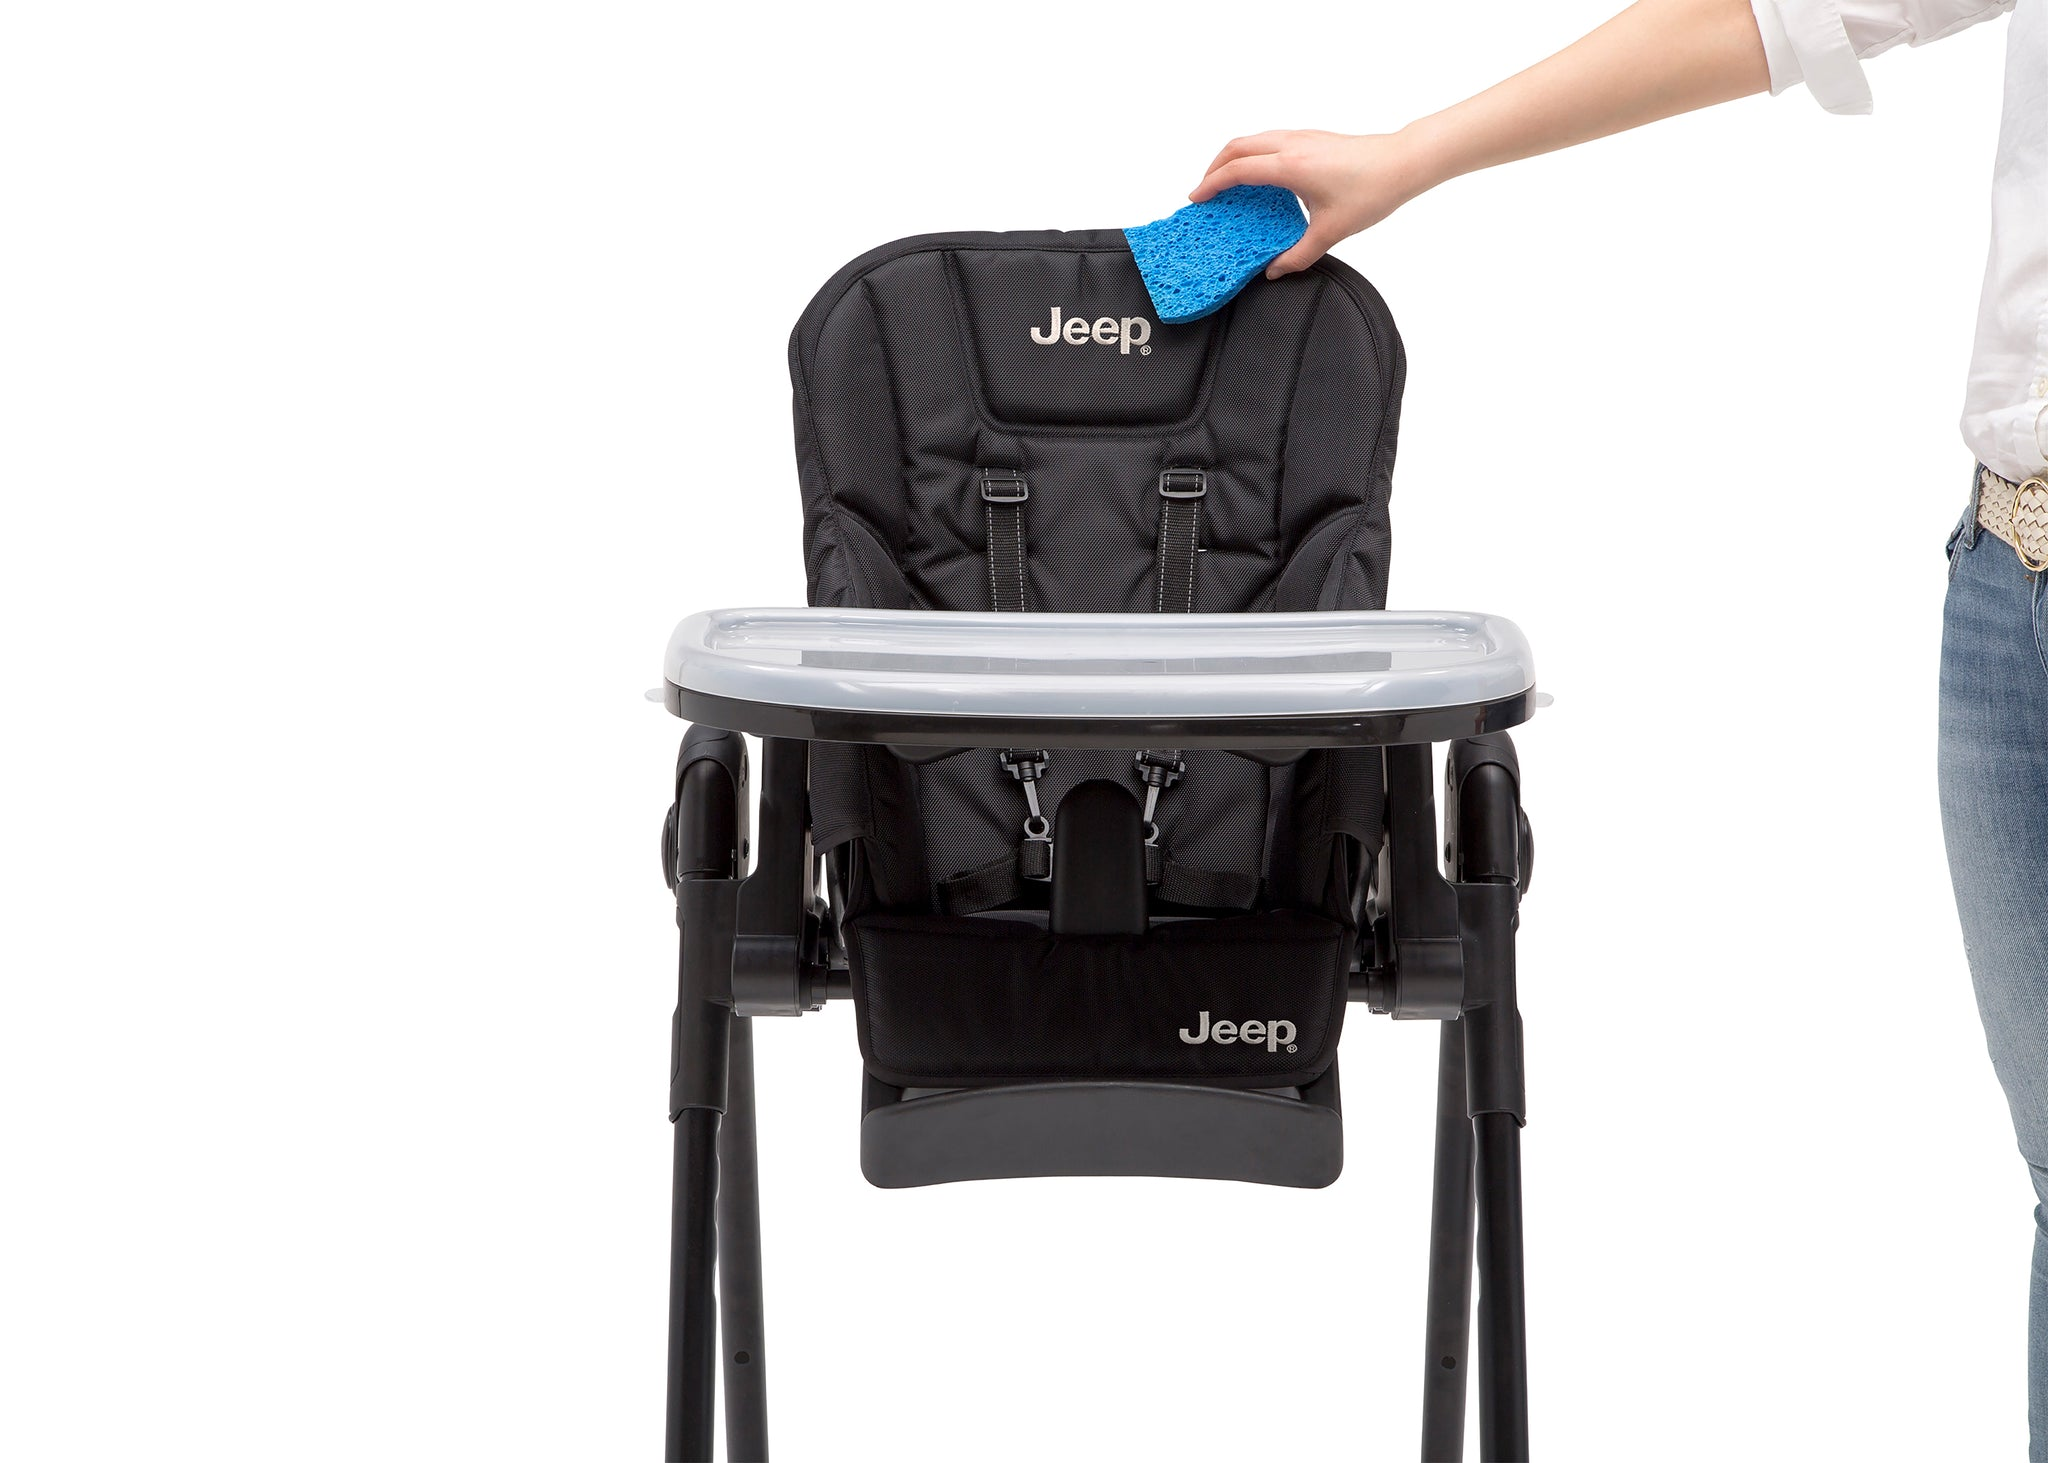 Jeep Classic Convertible High Chair for Babies and Toddlers by Delta Children, Midnight Black (2013), Dishwasher safe tray and water-repellent fabric